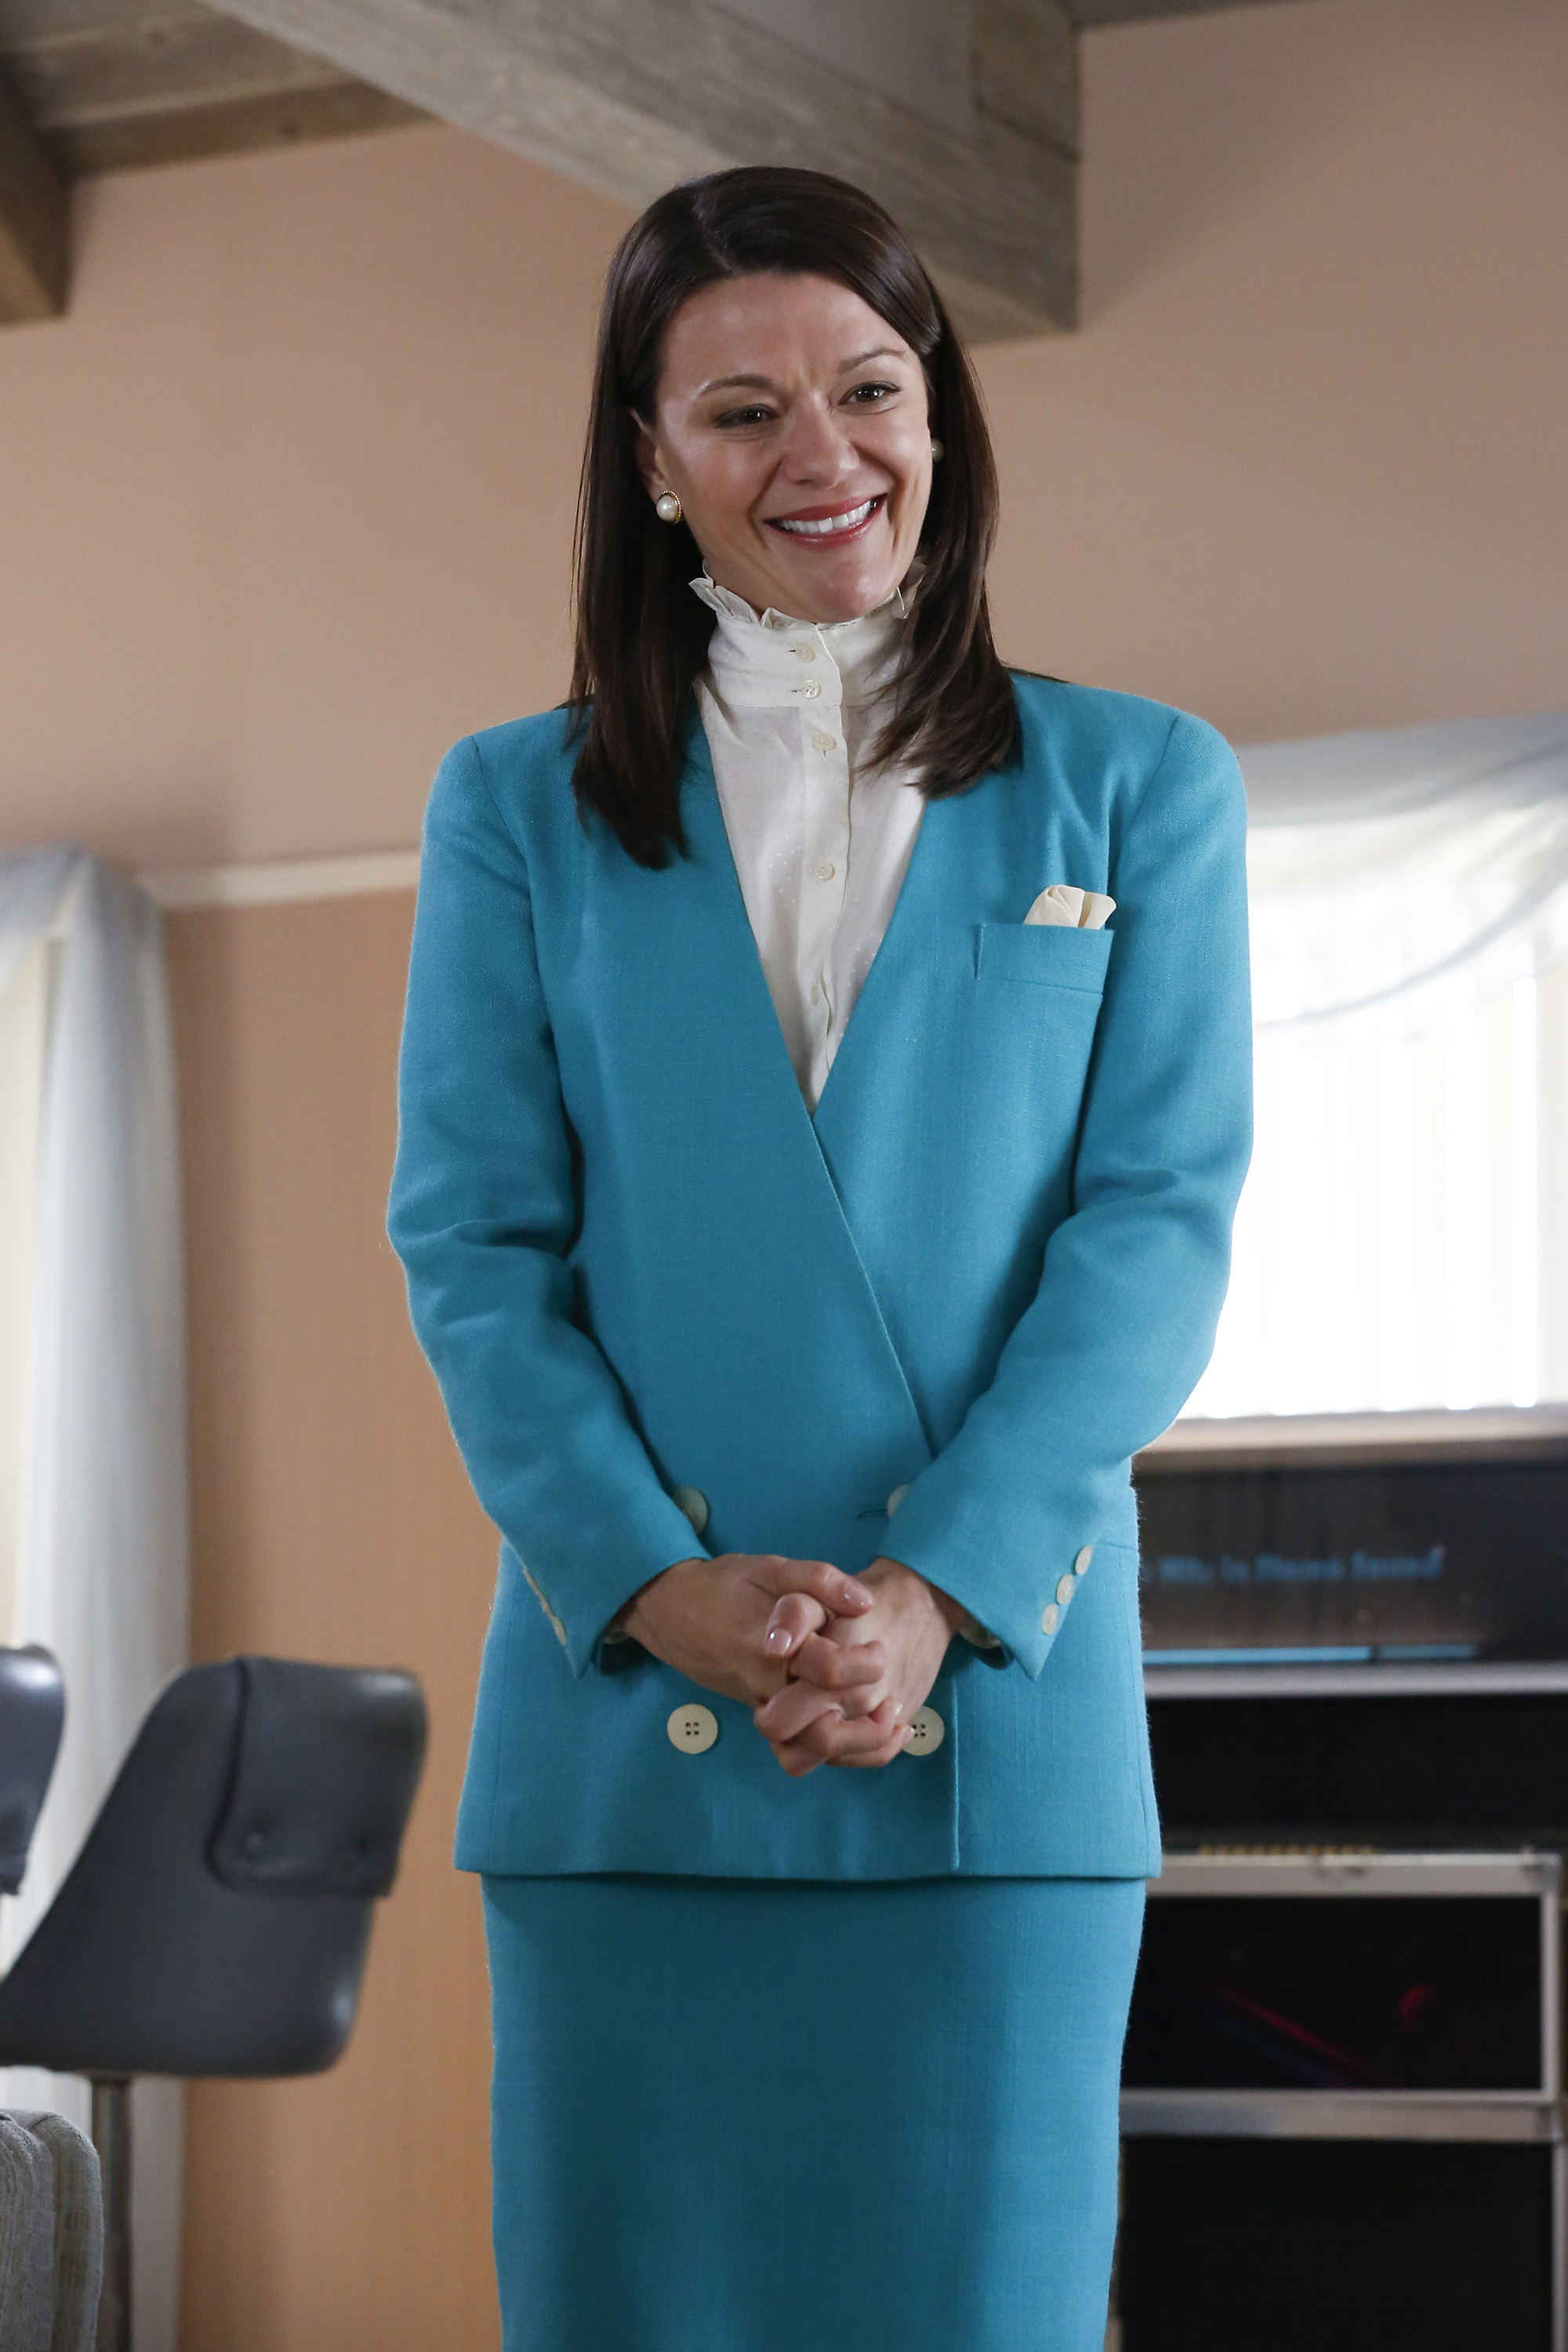 Mindy St  Claire | The Good Place Wikia | FANDOM powered by